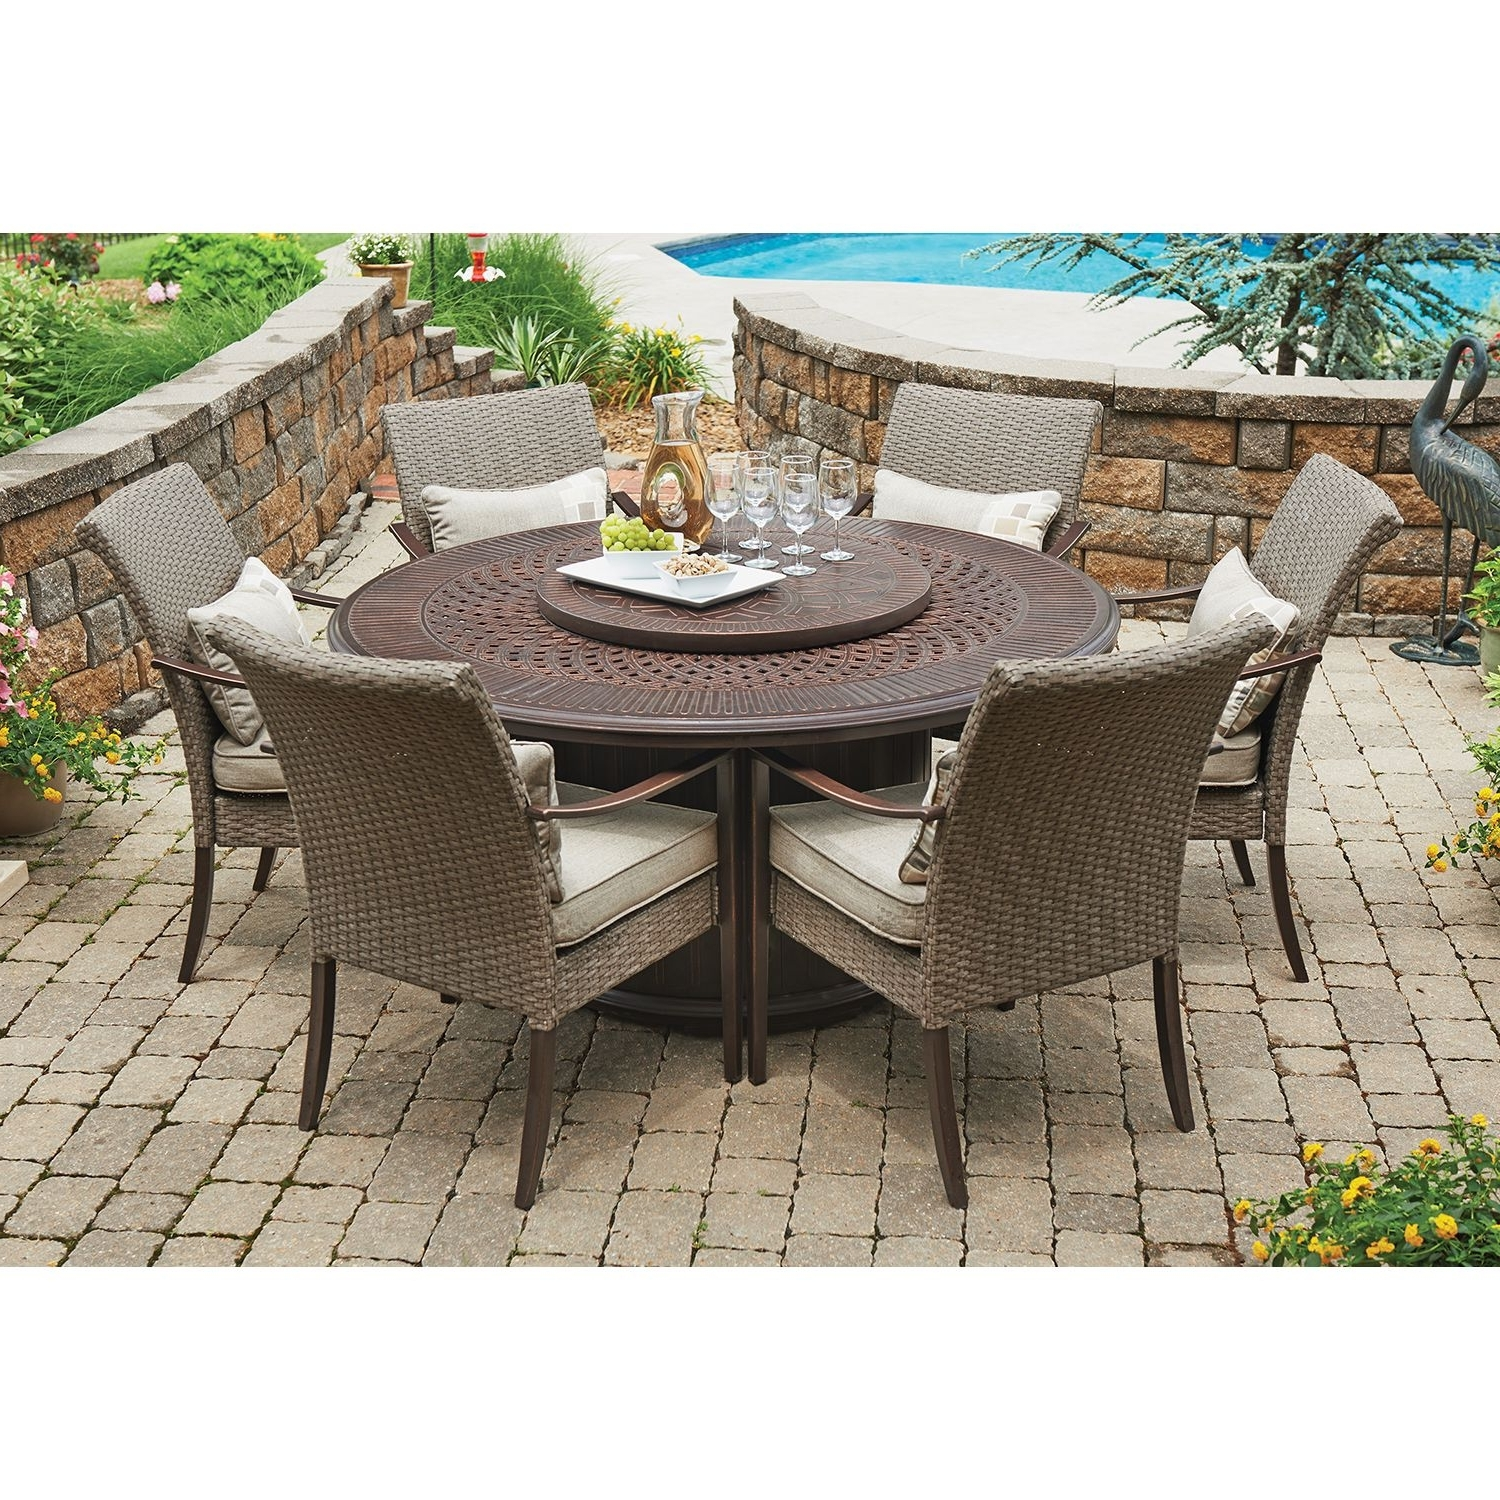 Widely Used Craigslist Patio Furniture Home Design Ideas Adidascc Sonic From 8 With Patio Conversation Sets At Sam's Club (View 19 of 20)